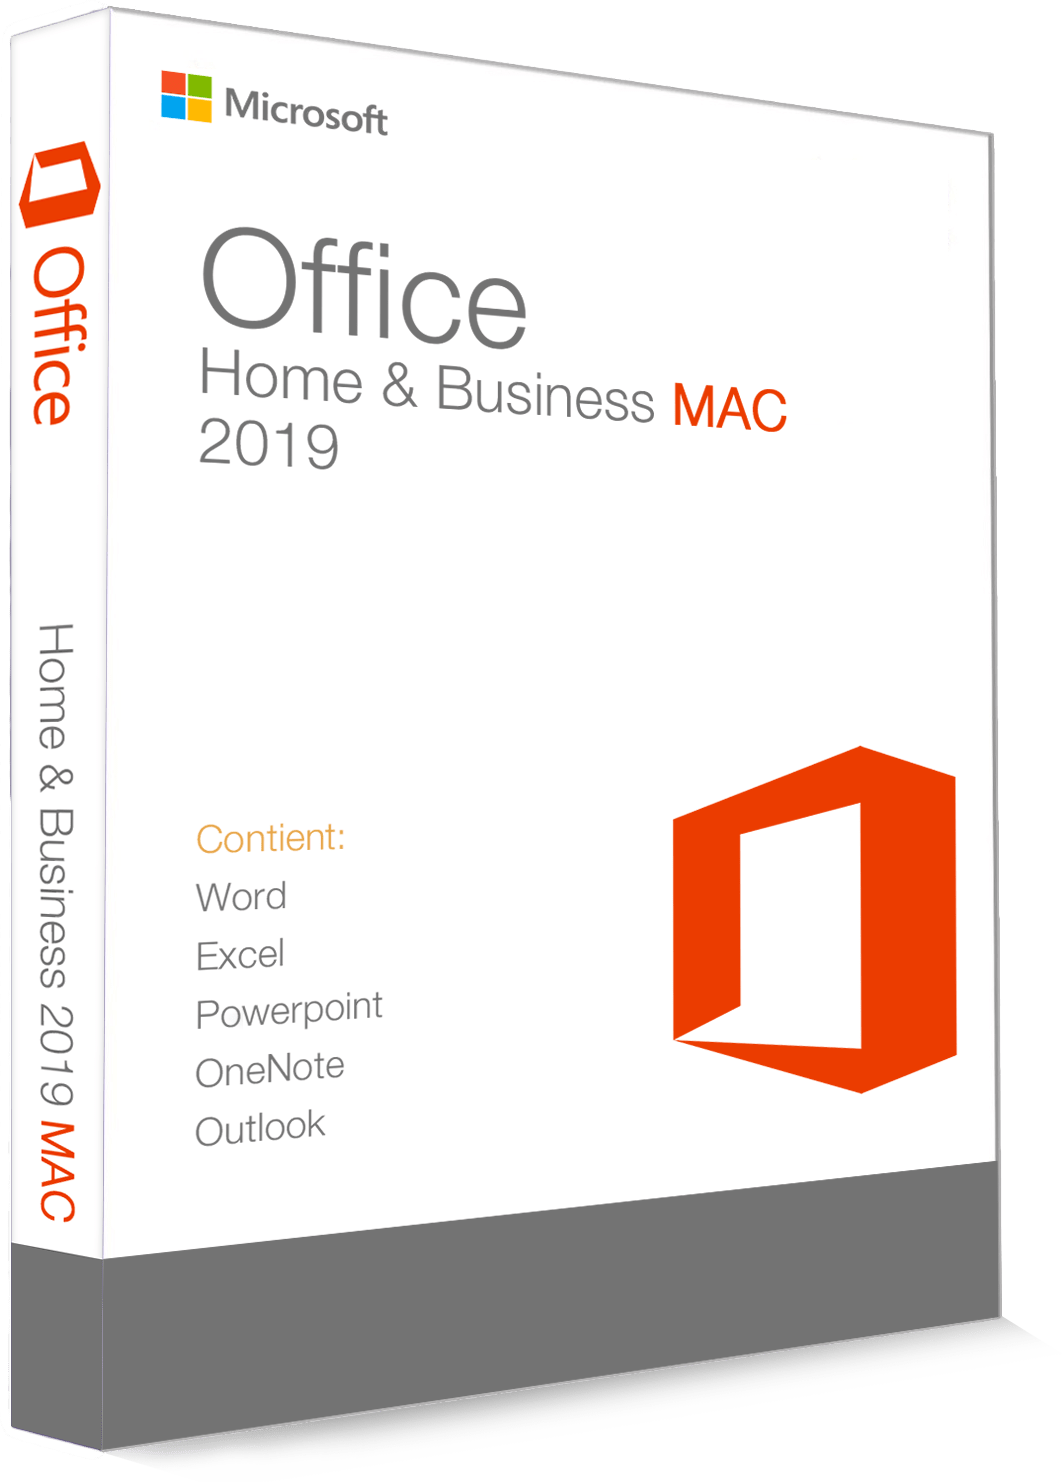 Clé Activation Office 2013 Microsoft Office 2019 Home Business Pour Mac Clé De Produit